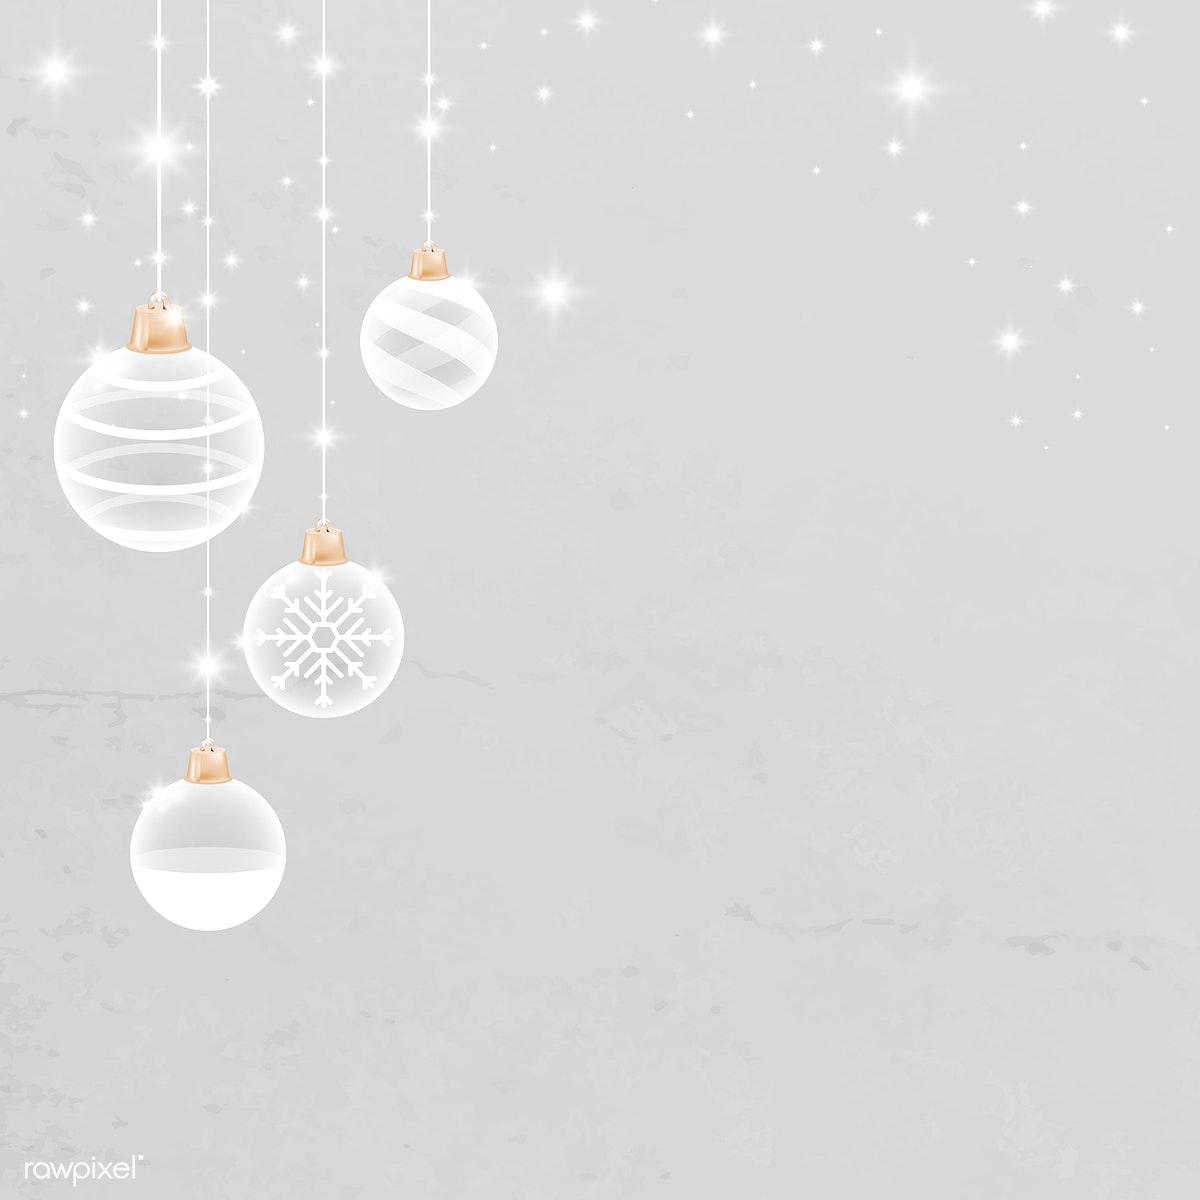 White Christmas Background.Download Premium Image Of White Christmas Bauble Patterned On Gray